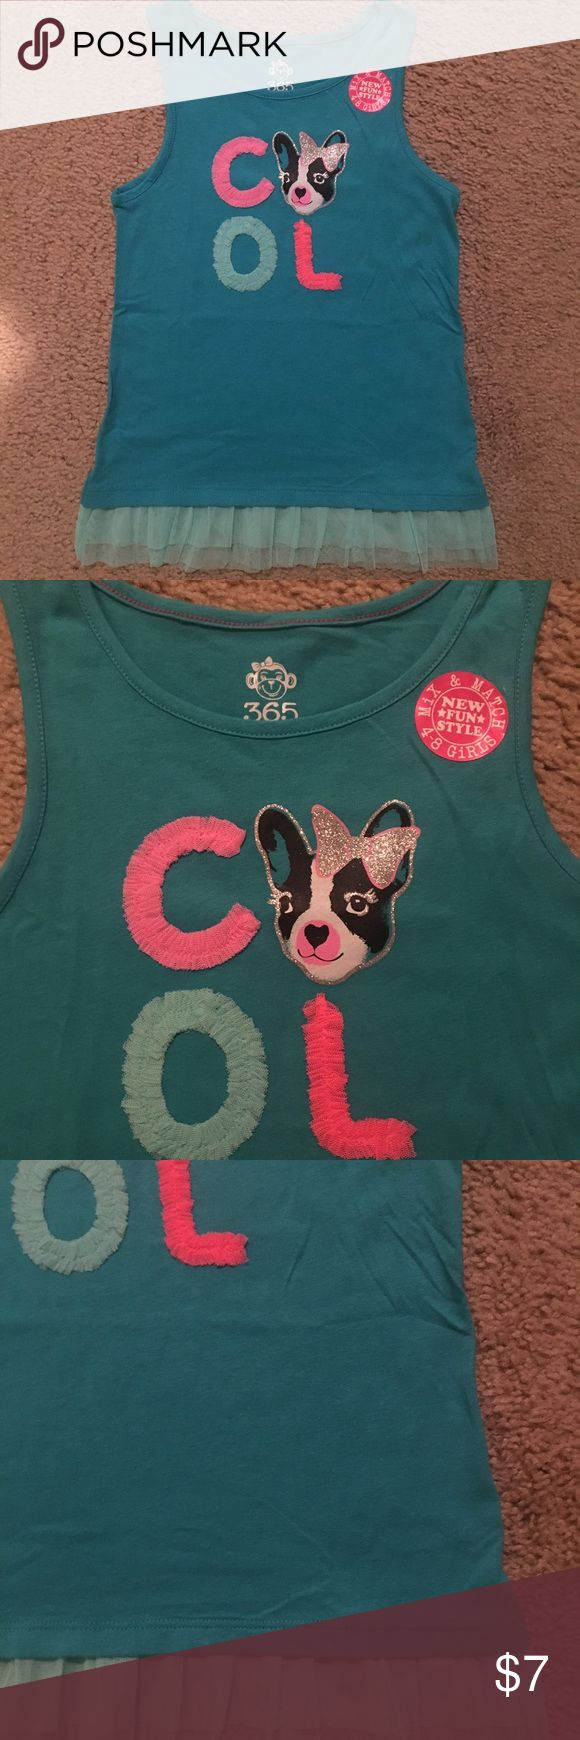 """NWT 365 KIDS FRENCH BULLDOG TANK TOP This adorable top from 365 KIDS is an aqua blue color with light blue tulle ruffled bottom edge. The letters are also of tulle and features a little French bulldog. This is another item in their """"mix & match"""" line & is NWT! 365 KIDS Shirts & Tops Tank Tops"""